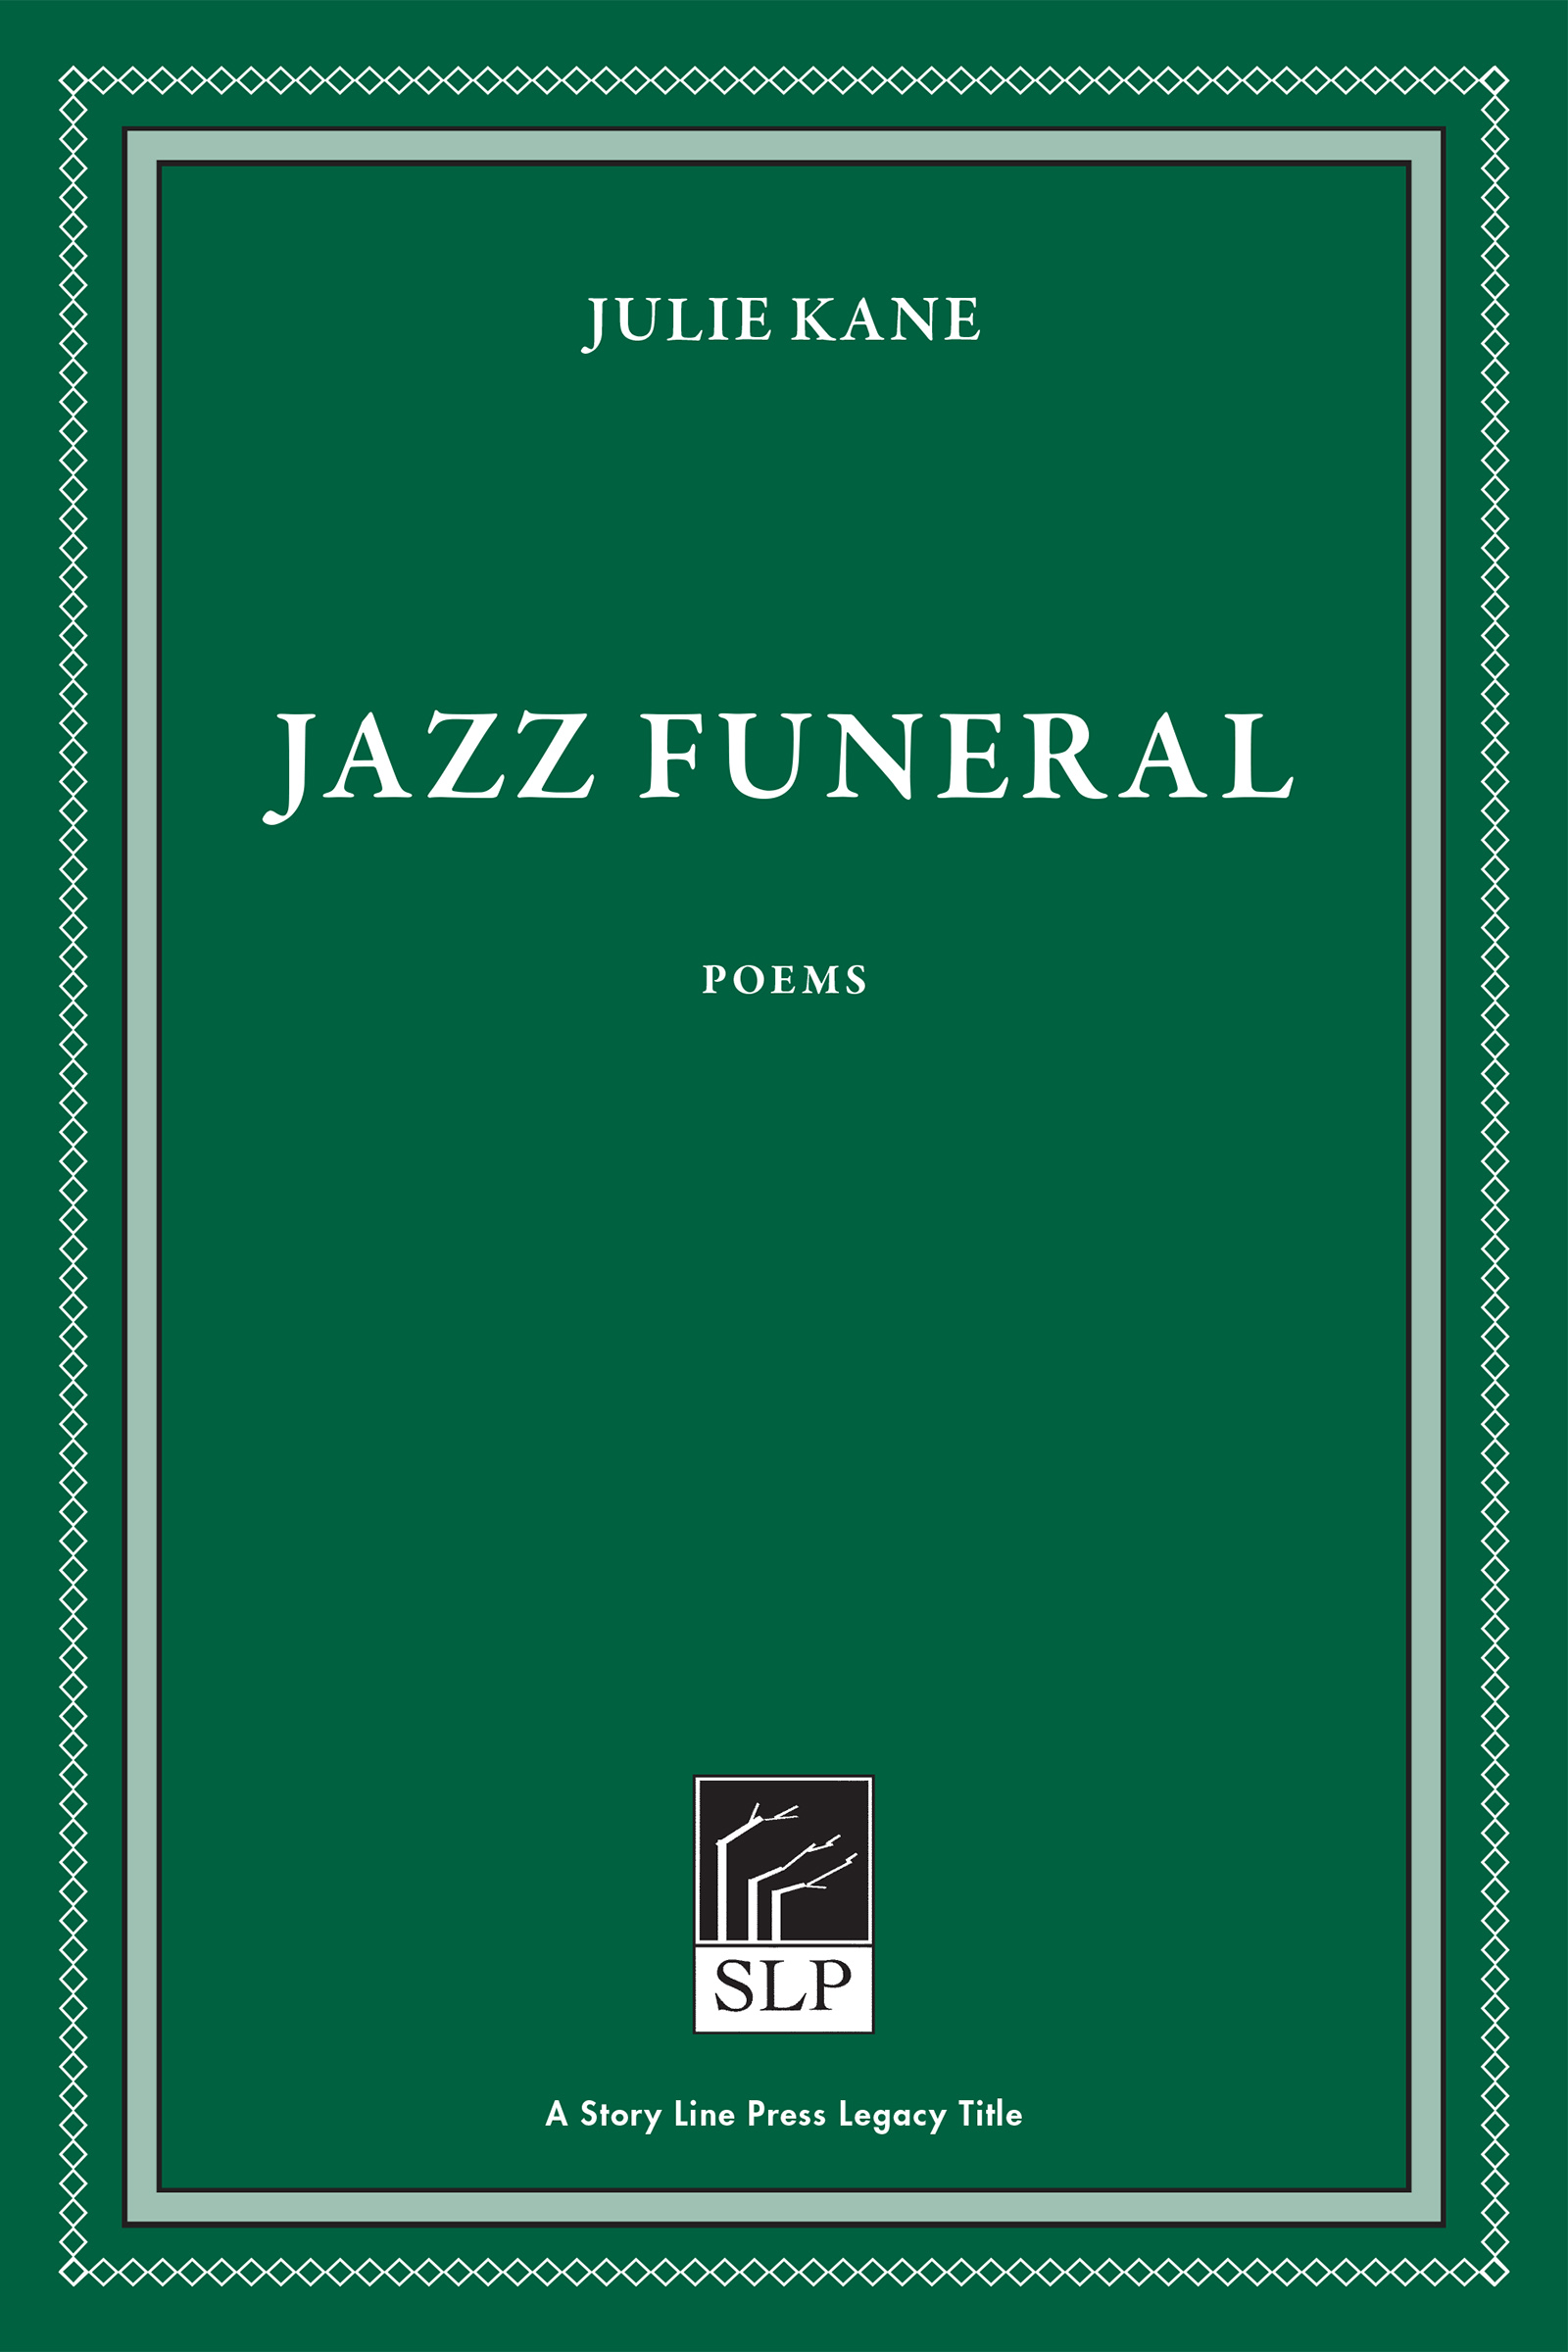 Story Line Press legacy tittle, Julie Kane Jazz Funeral Poems, white script text against emerald green background.